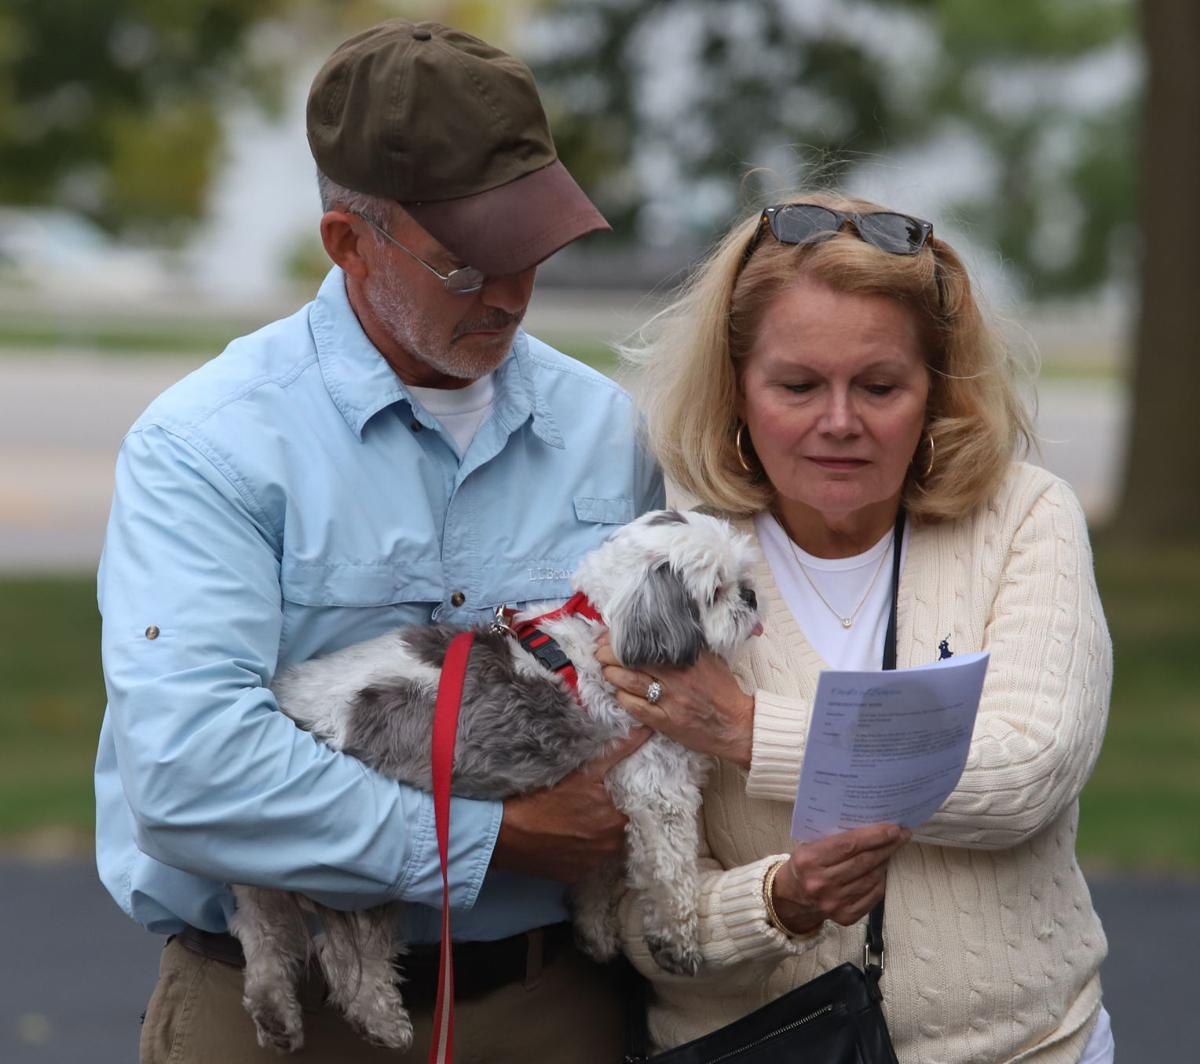 New Hope Animal Shelter helps low-income families care for